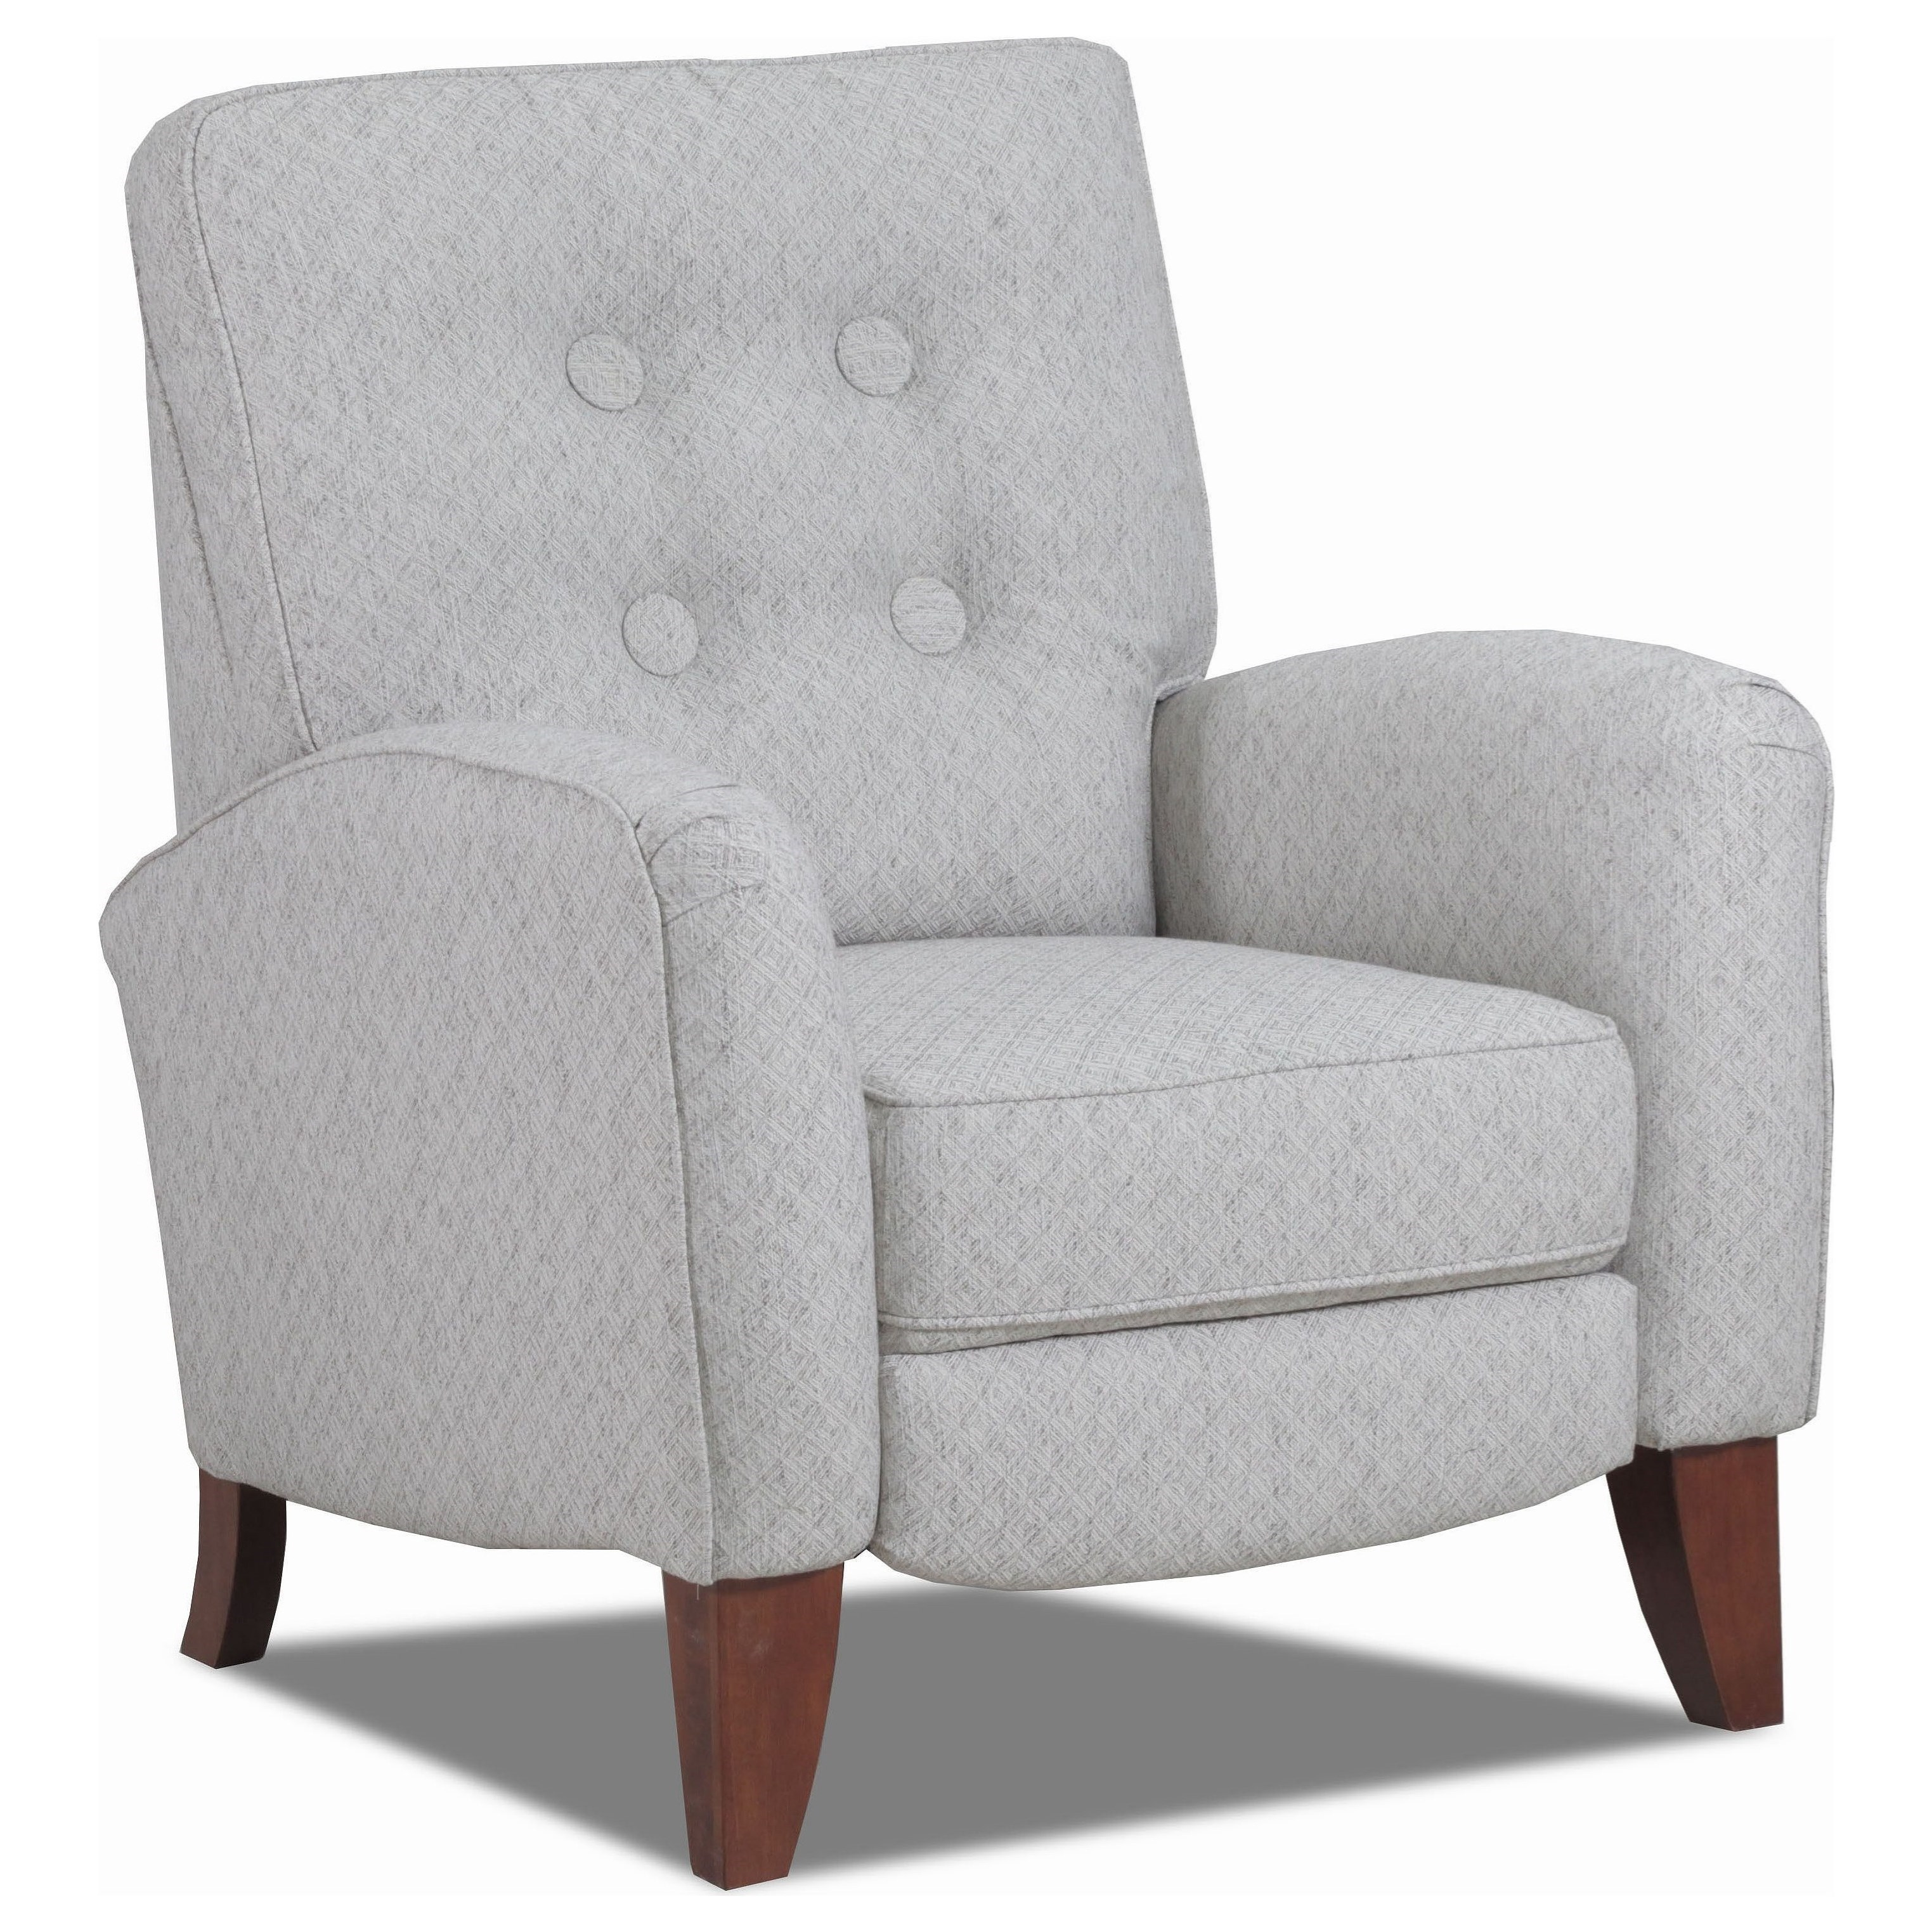 Lane Fritz High-Leg Recliner with Button Tufted Back - Darvin Furniture - High Leg Recliner  sc 1 st  Darvin Furniture & Lane Fritz High-Leg Recliner with Button Tufted Back - Darvin ... islam-shia.org